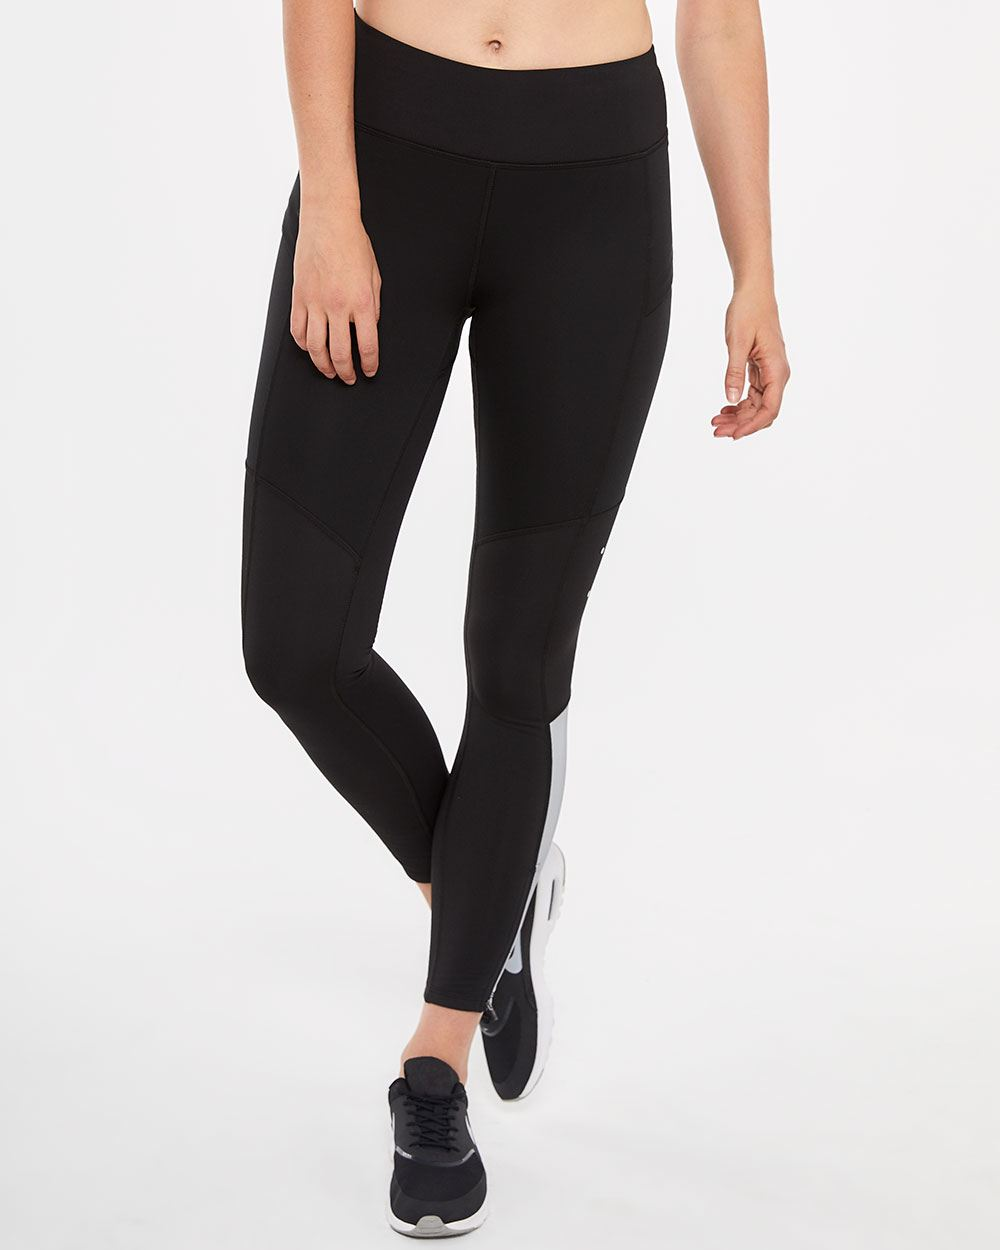 85eabd7ea2 Hyba Extreme Weather Leggings. (4). read 4 reviews